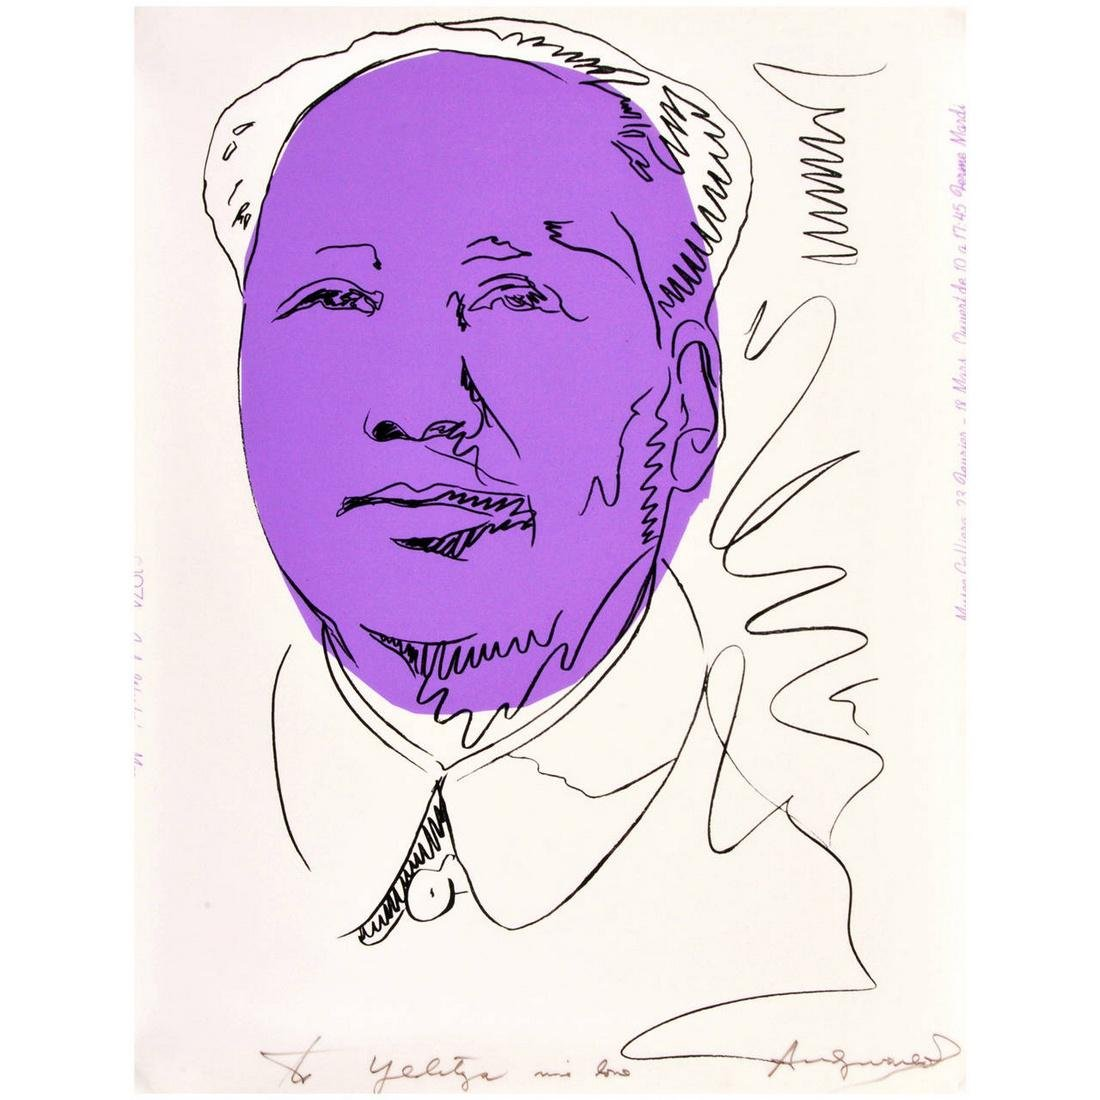 Rare Andy Warhol MAO Exhibition Screen-Print, Signed